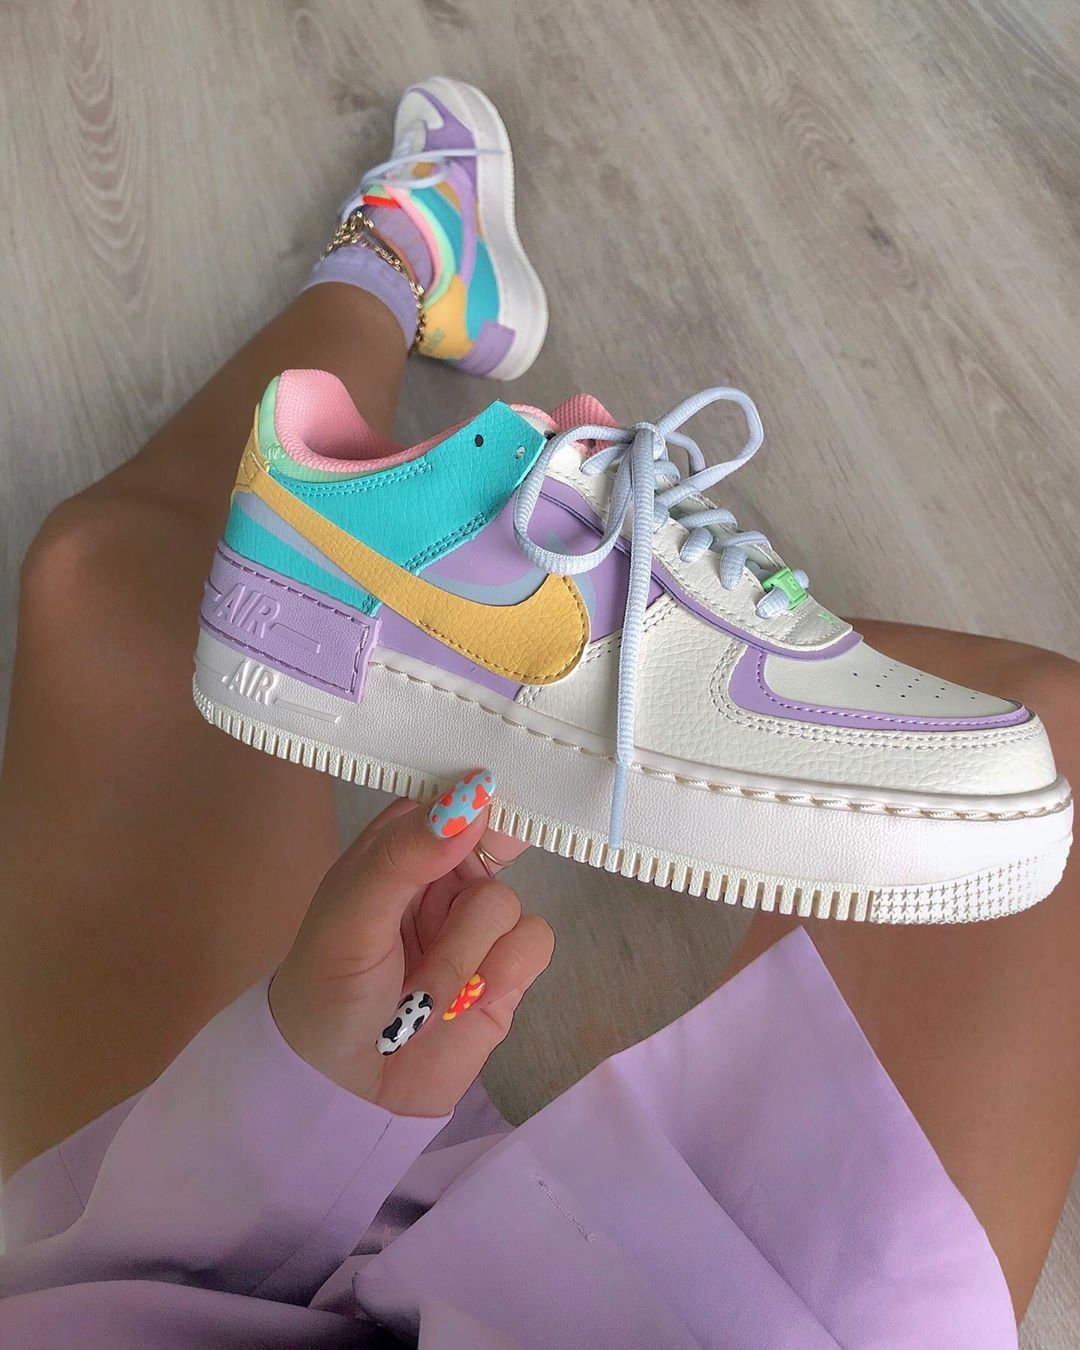 Nike Air Force 1 Shadow Pastel Multi | Nike shoes air force ...